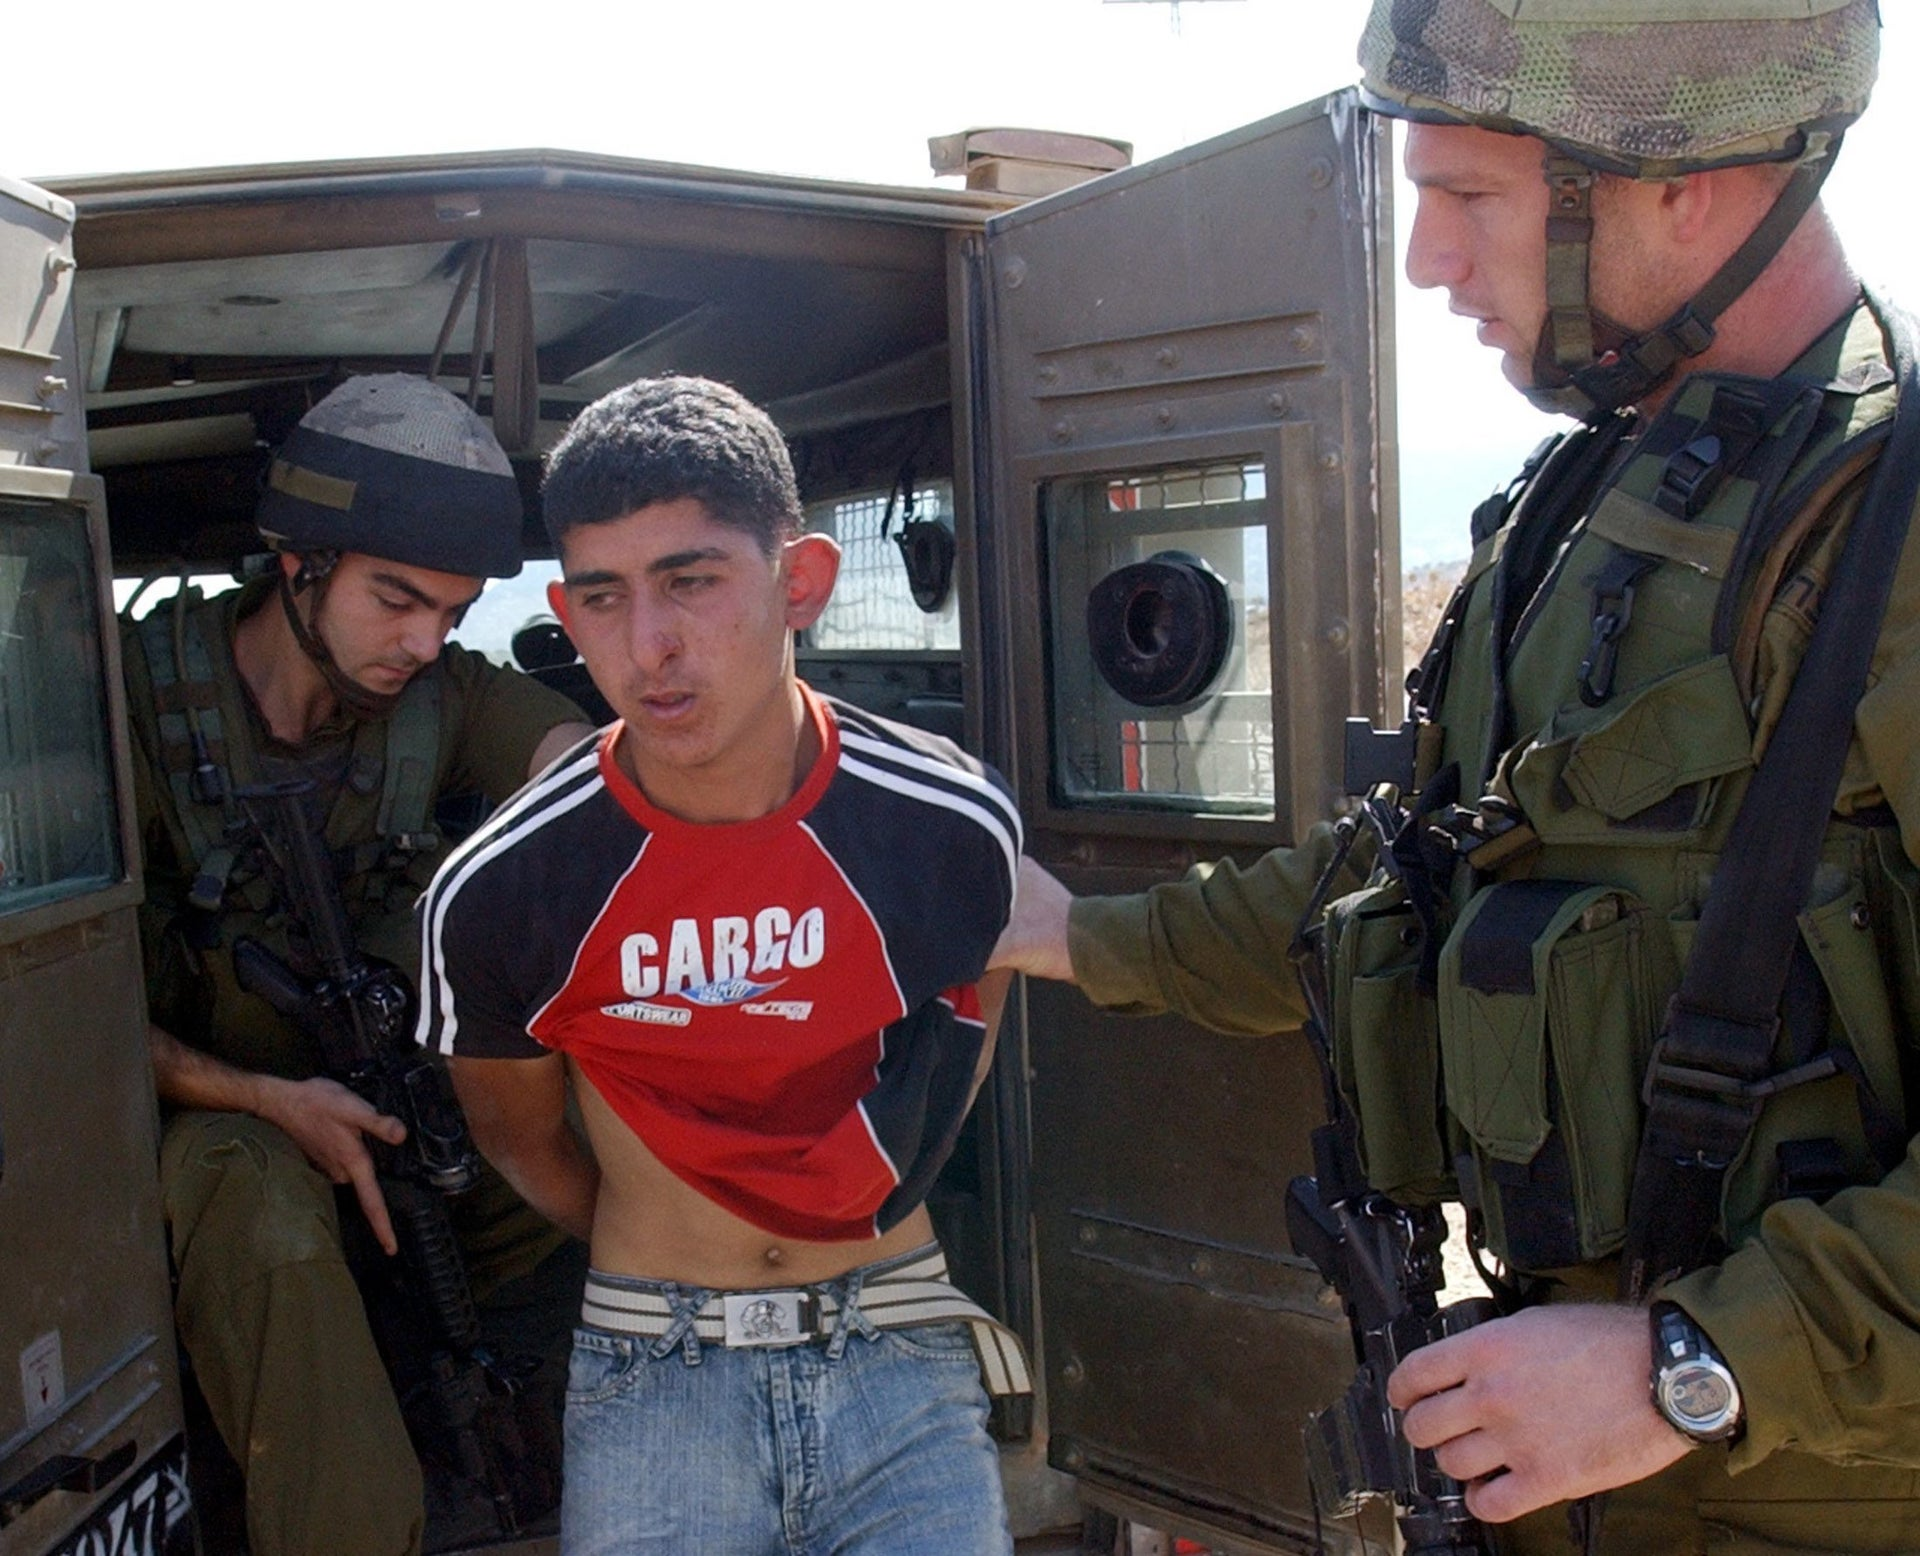 FILE PHOTO: Israeli soldiers arrest a Palestinian teenager at the Beit Furik checkpoint near the West Bank city of Nablus October 5, 2005.